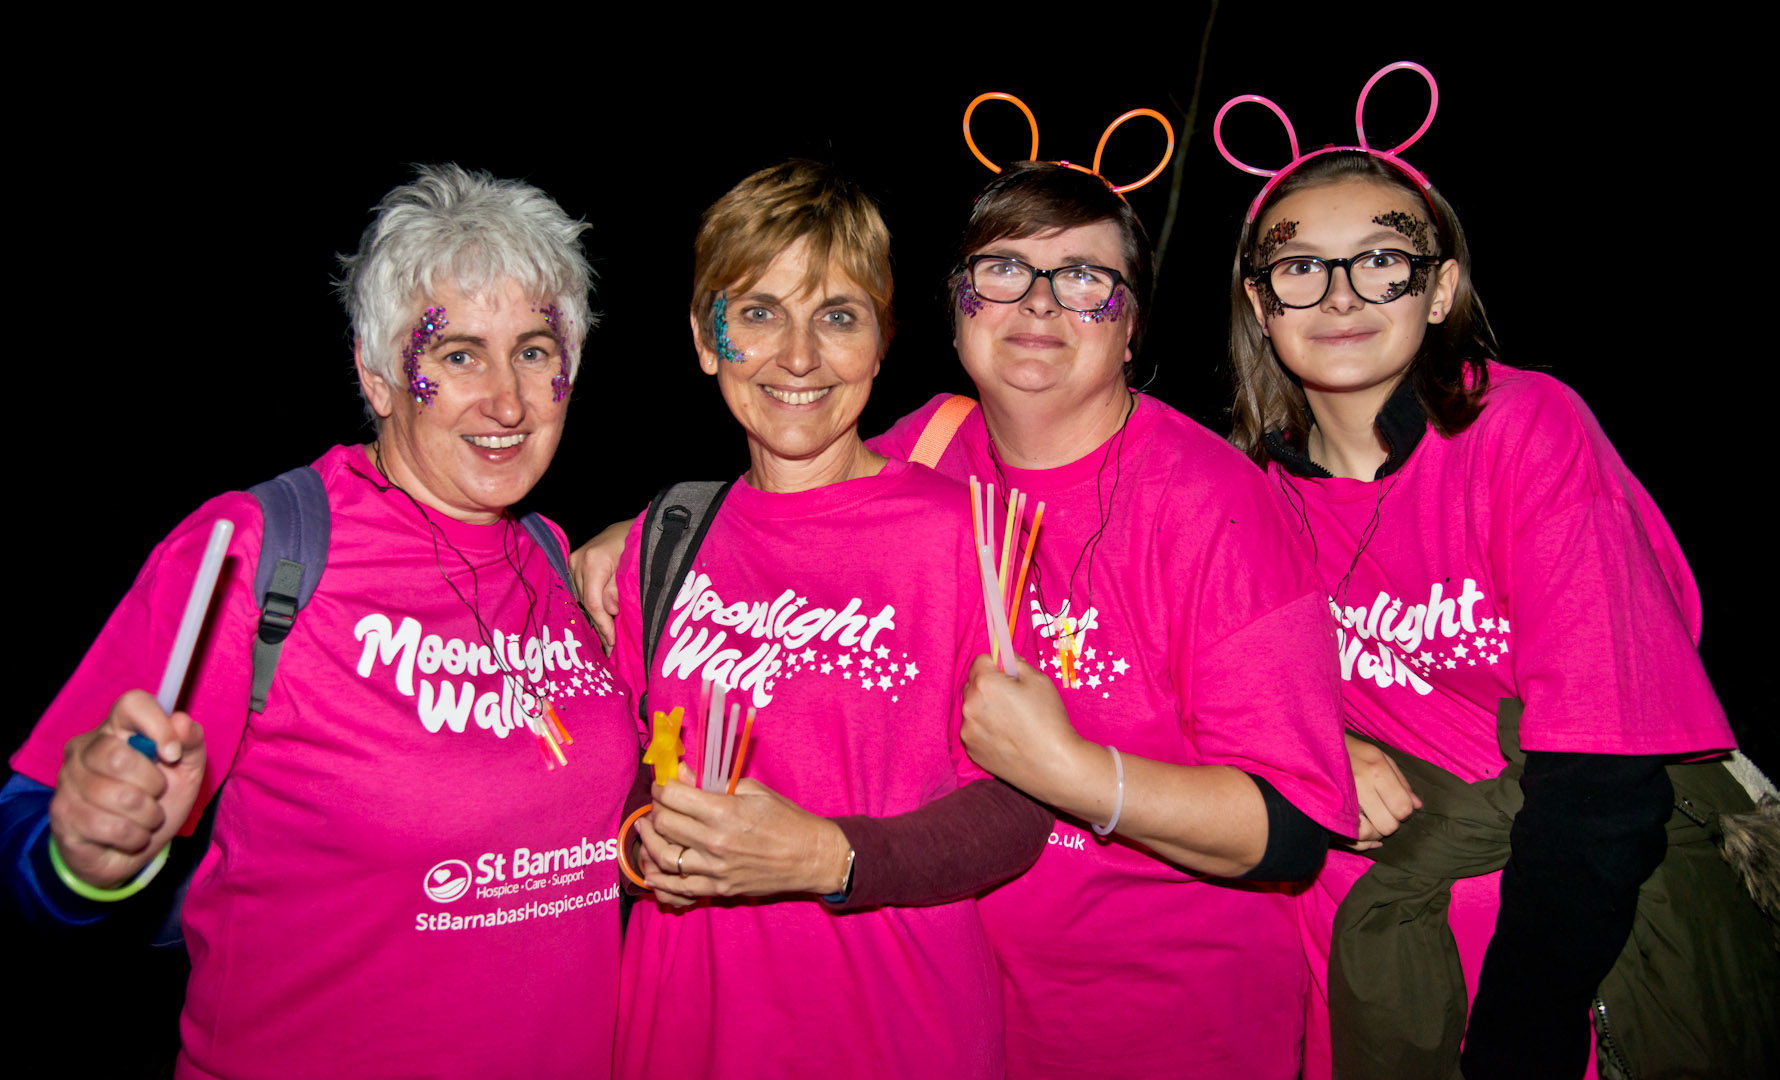 Cheryl and nurses at the Moonlight Walk